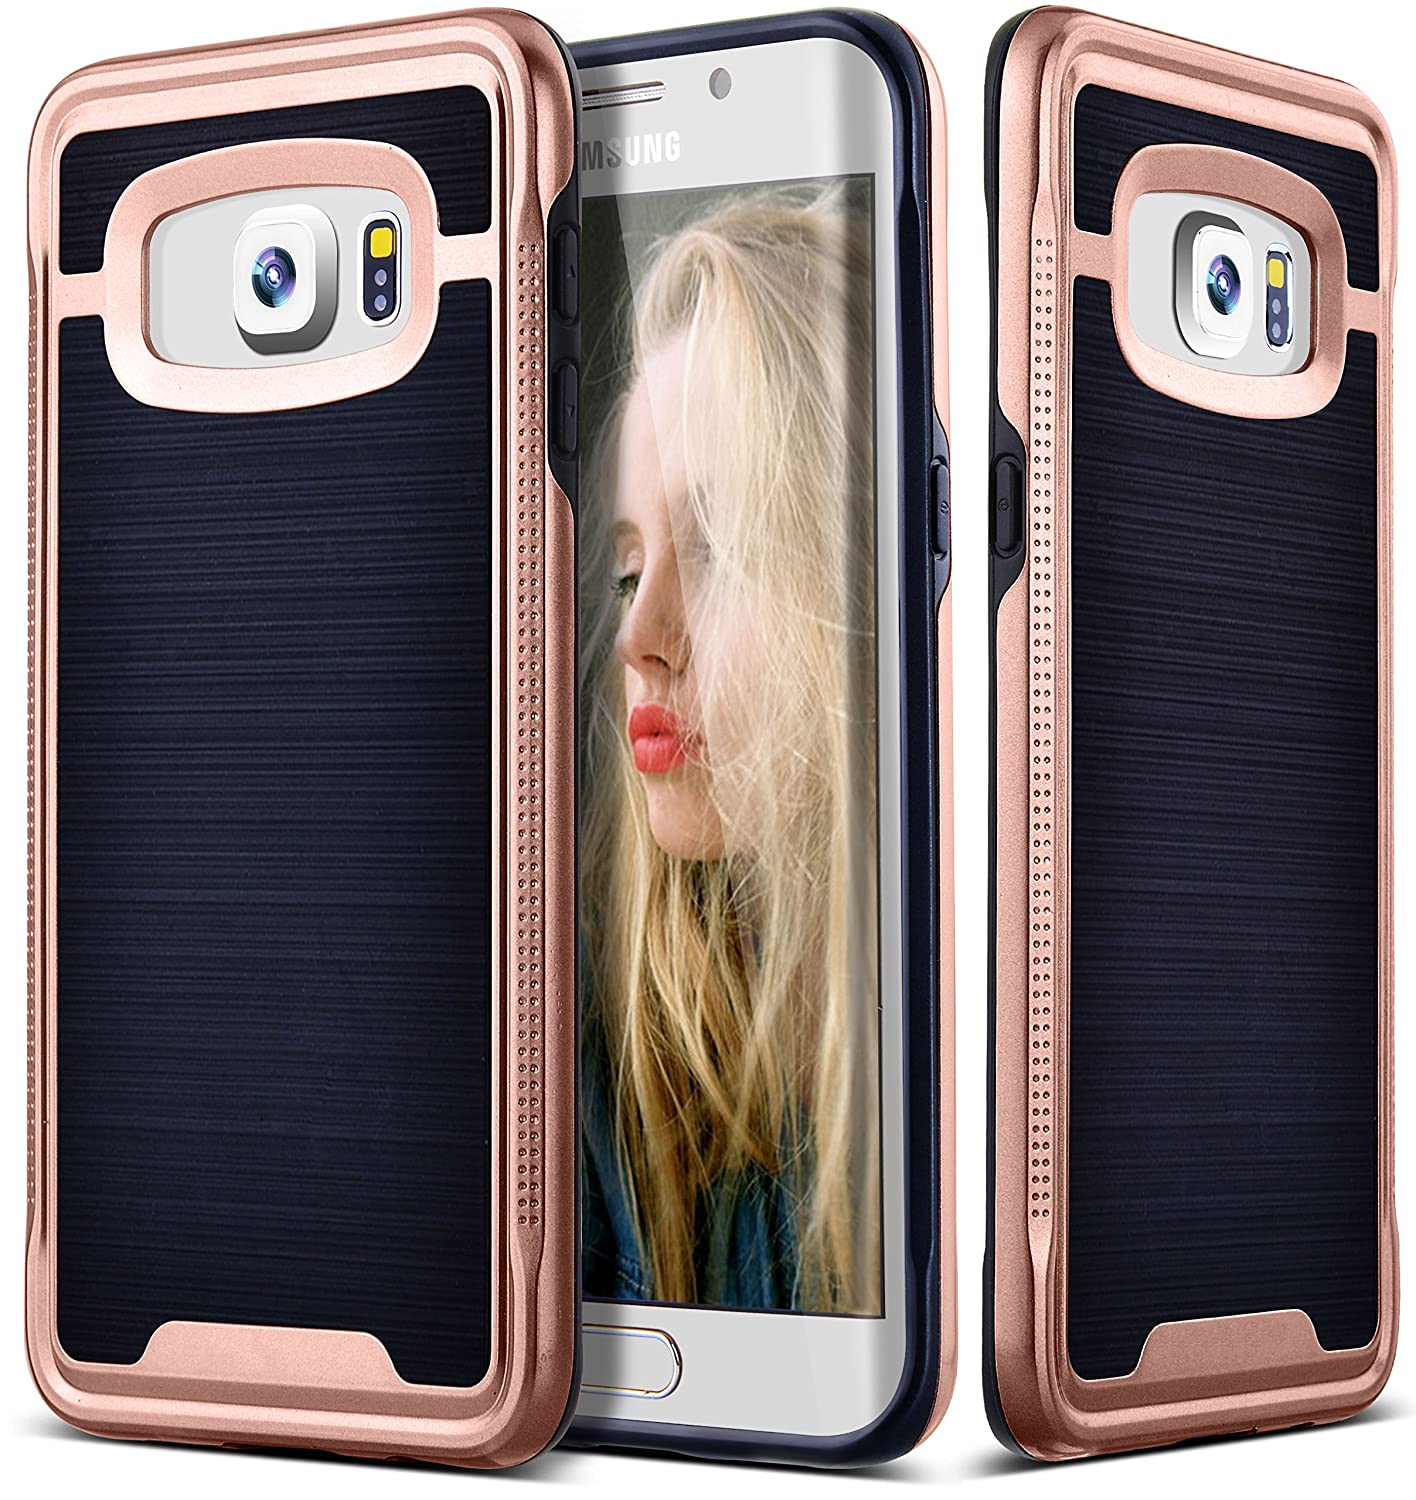 samsung galaxy s6 plus phone case